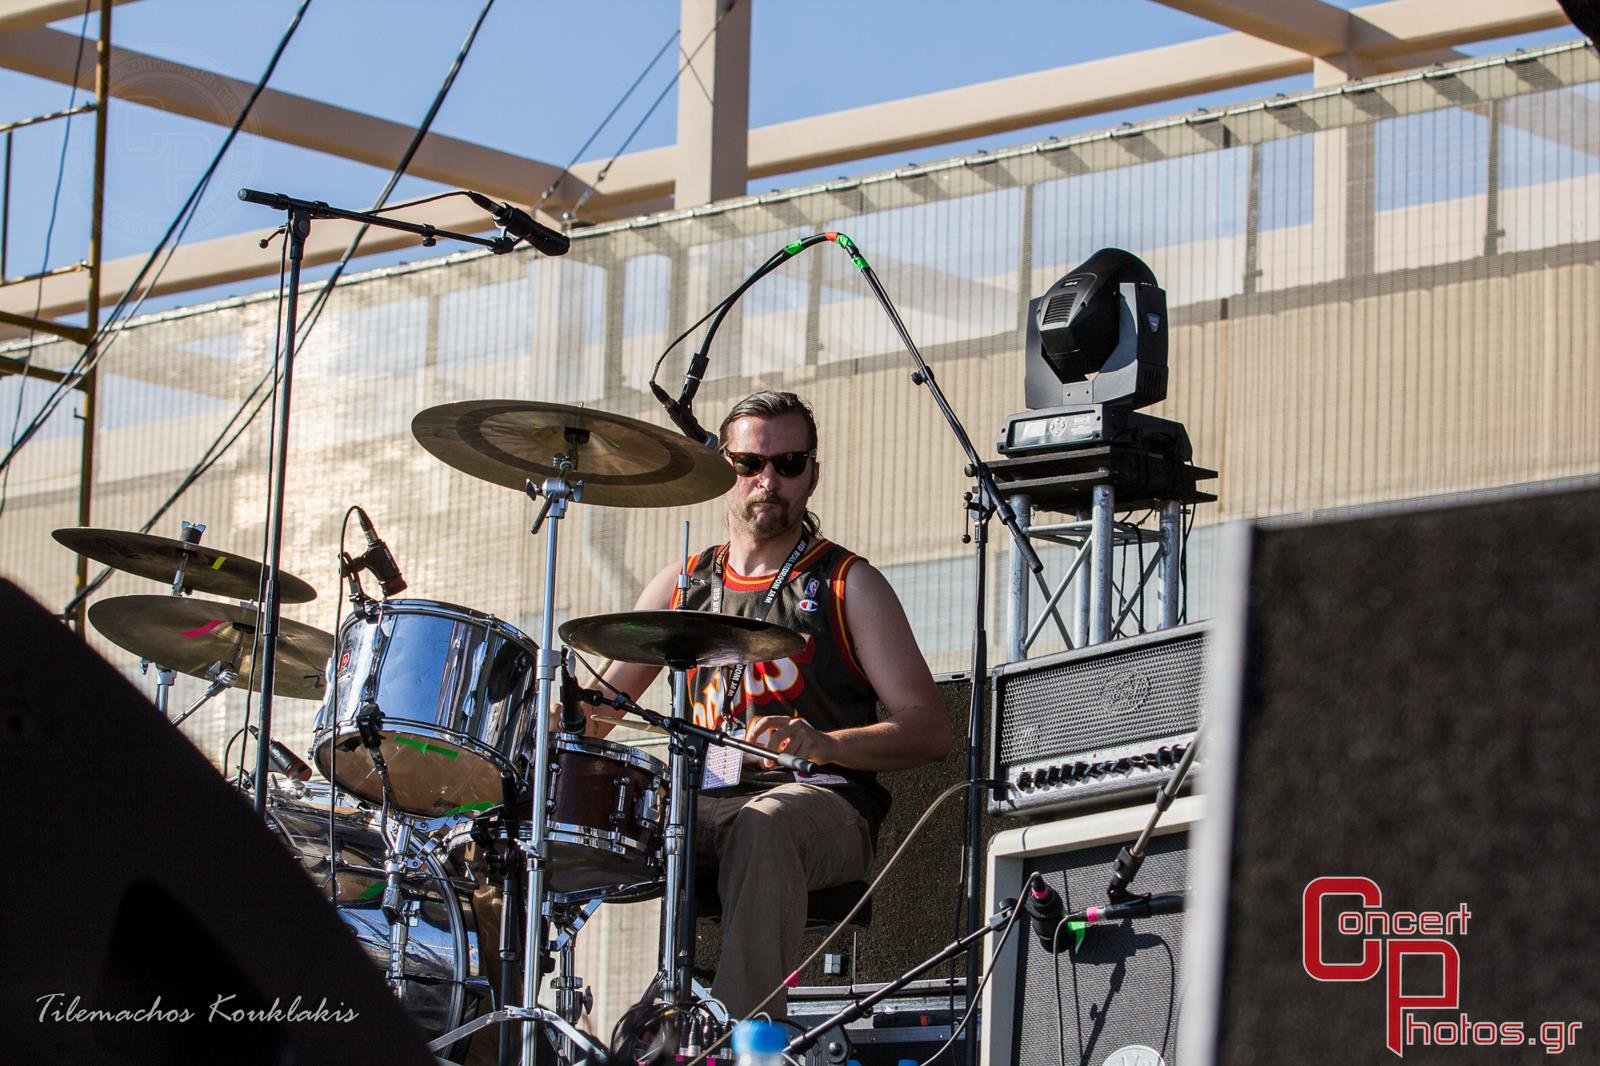 Heavy By The Sea 2014-Heavy By The Sea 2014 photographer:  - concertphotos_20140627_09_10_45-7